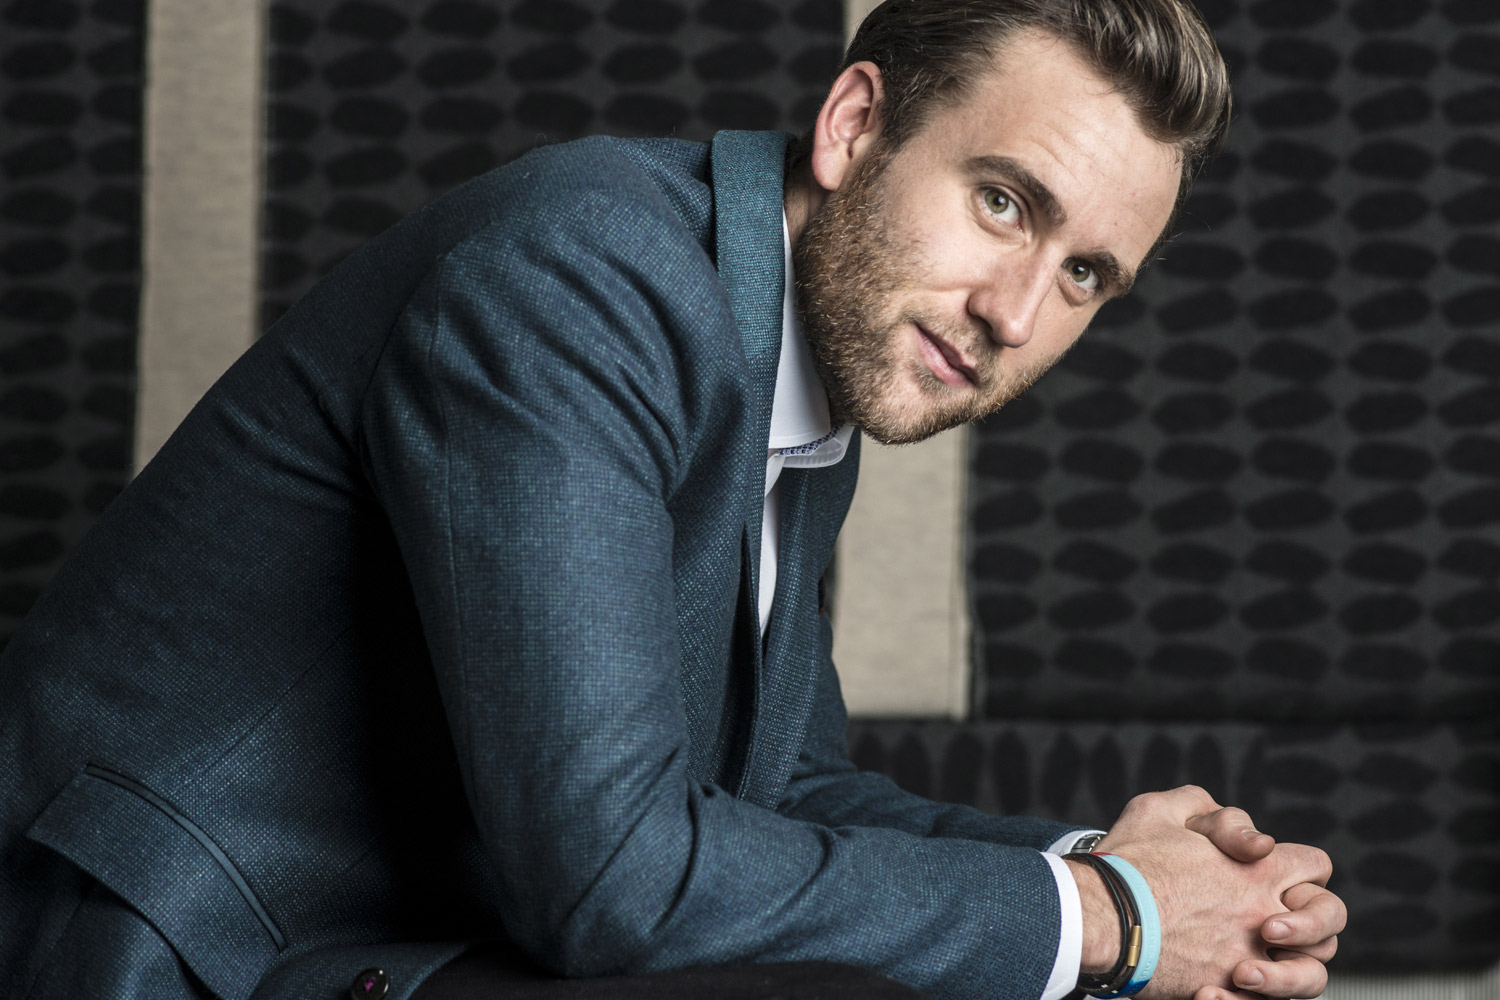 Matthew Lewis Phone number, Contact Details, Whatsapp Number, Mobile Number, Email Id